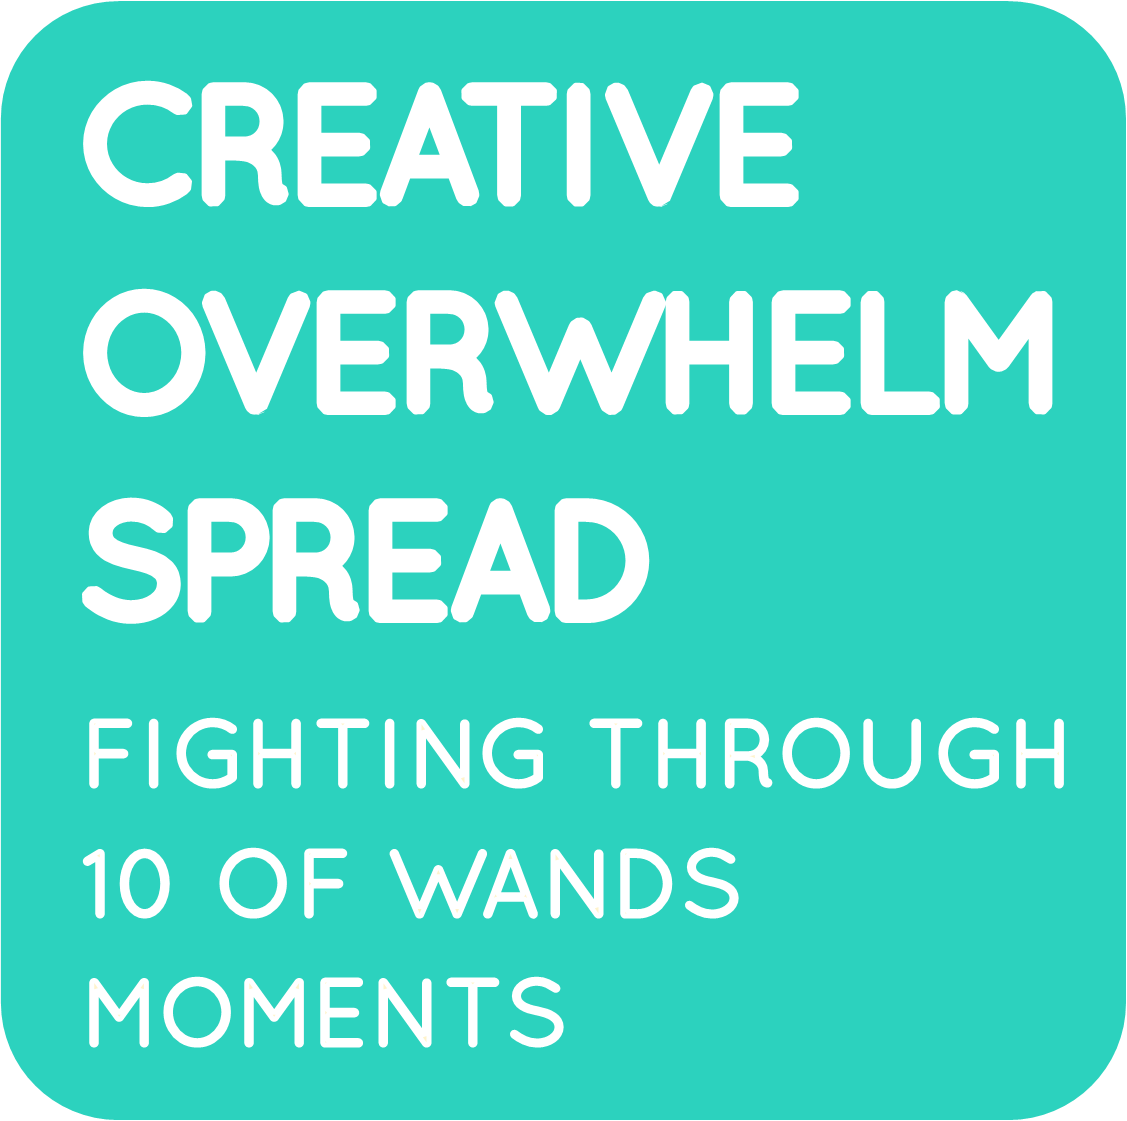 07-creative overwhelm spread.png